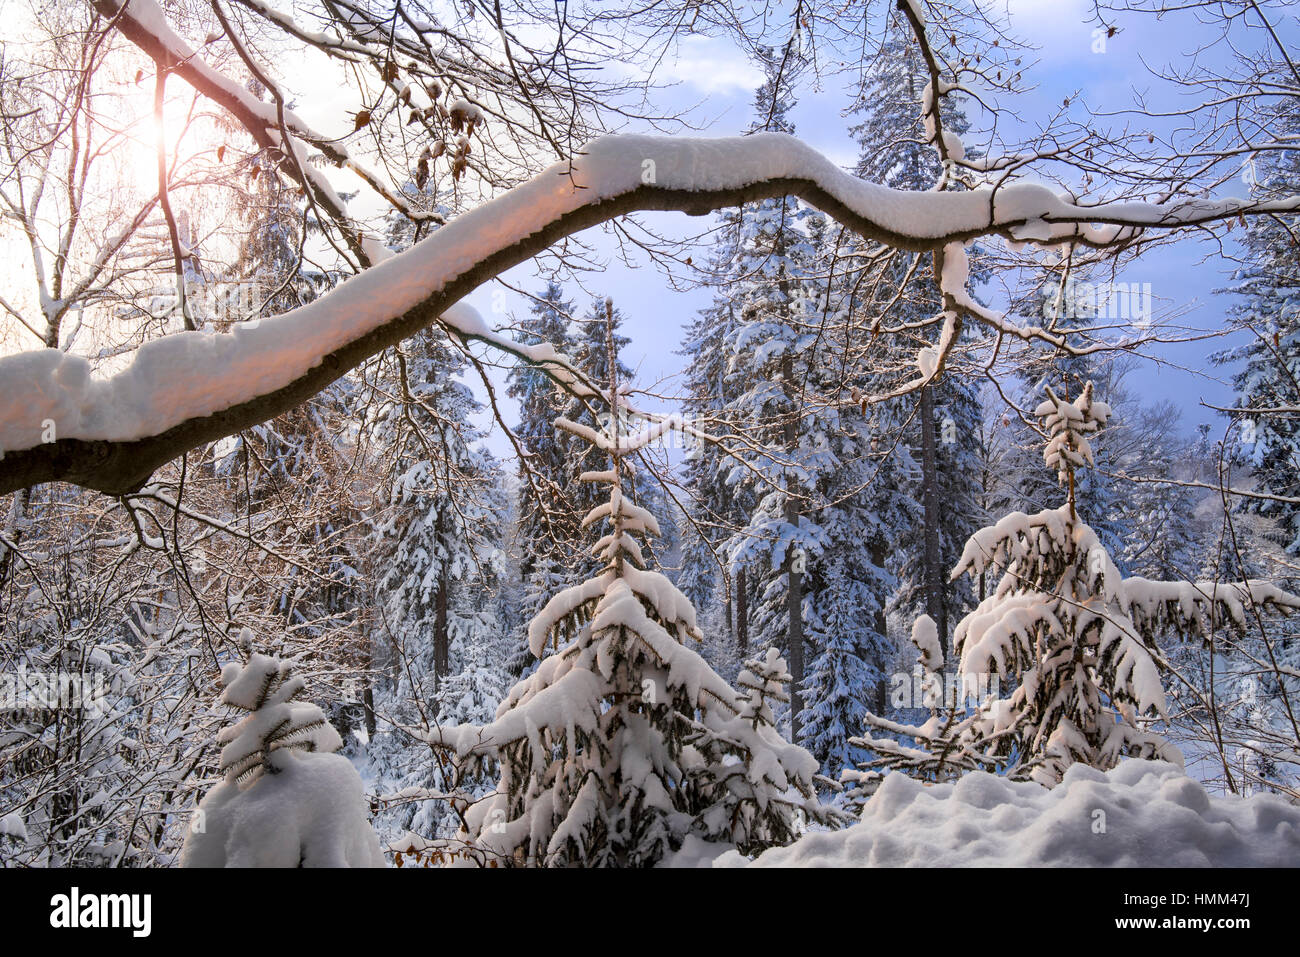 Tree branch laden with snow in coniferous spruce forest in winter at sunset - Stock Image